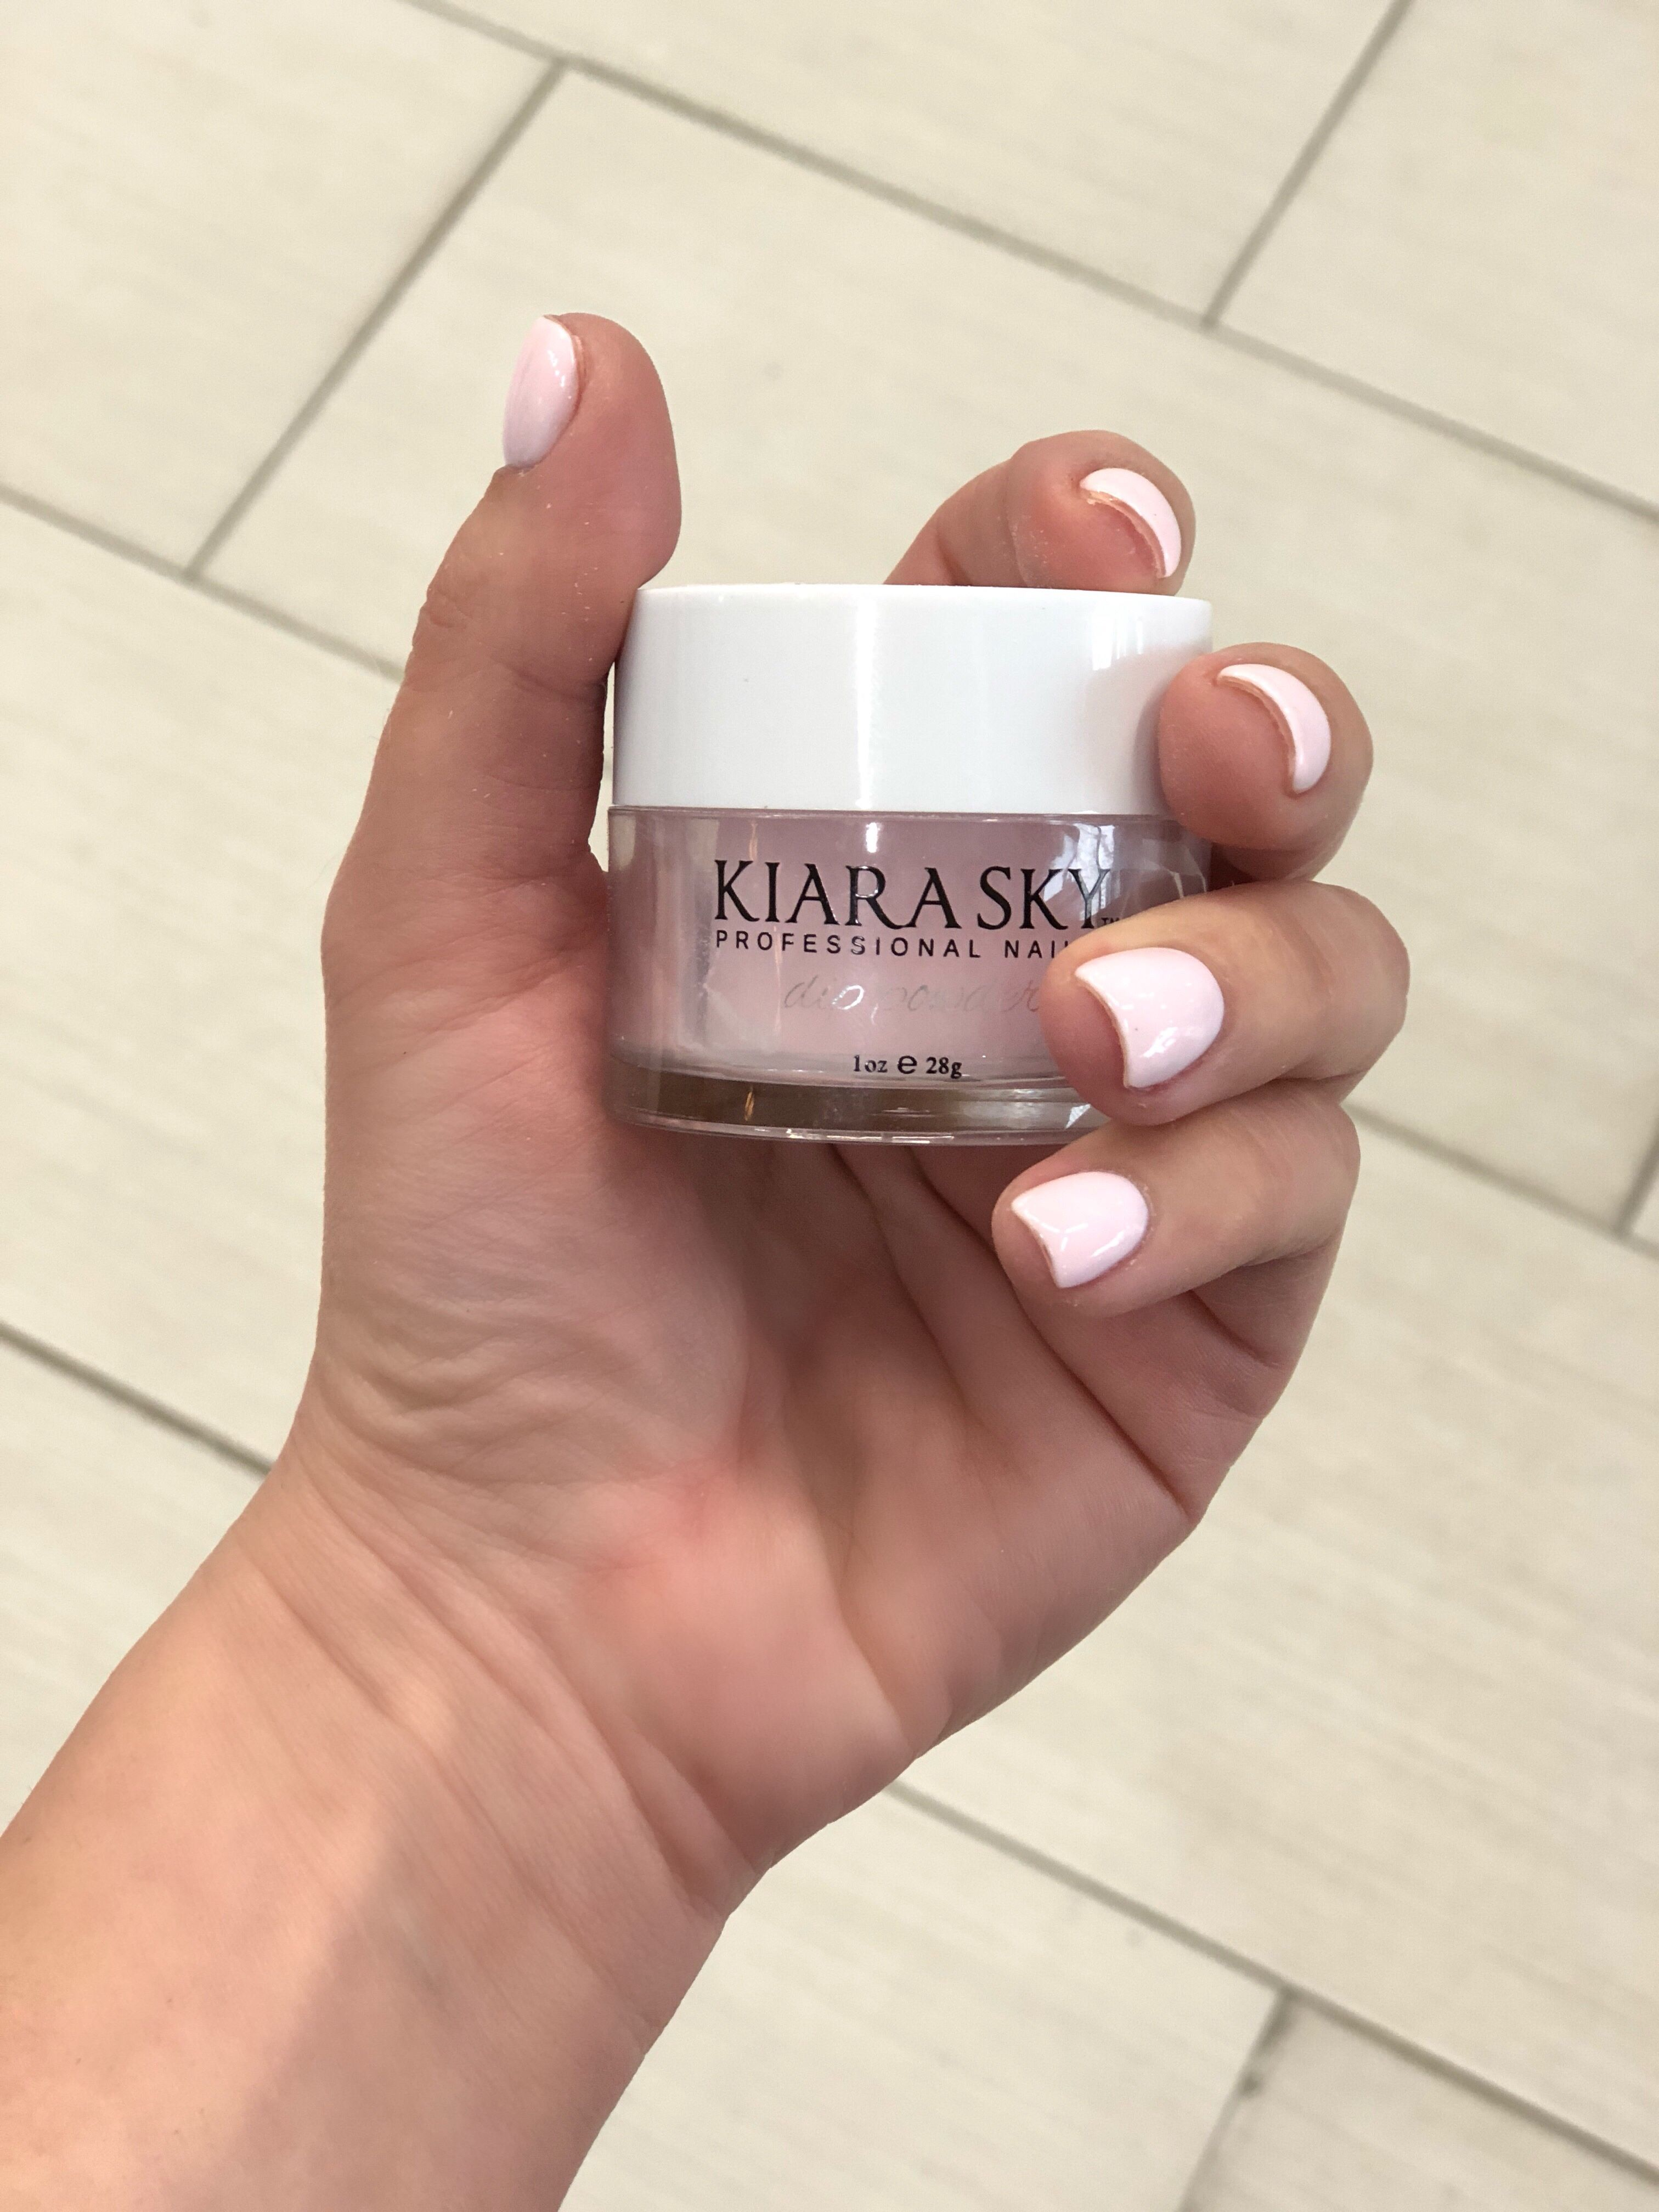 This Color Is The Simple Life By Kiara Sky I Love That There Is No Uv Light Necessary With Dip Nail Dipped Nails Sns Nails Colors Nail Dipping Powder Colors